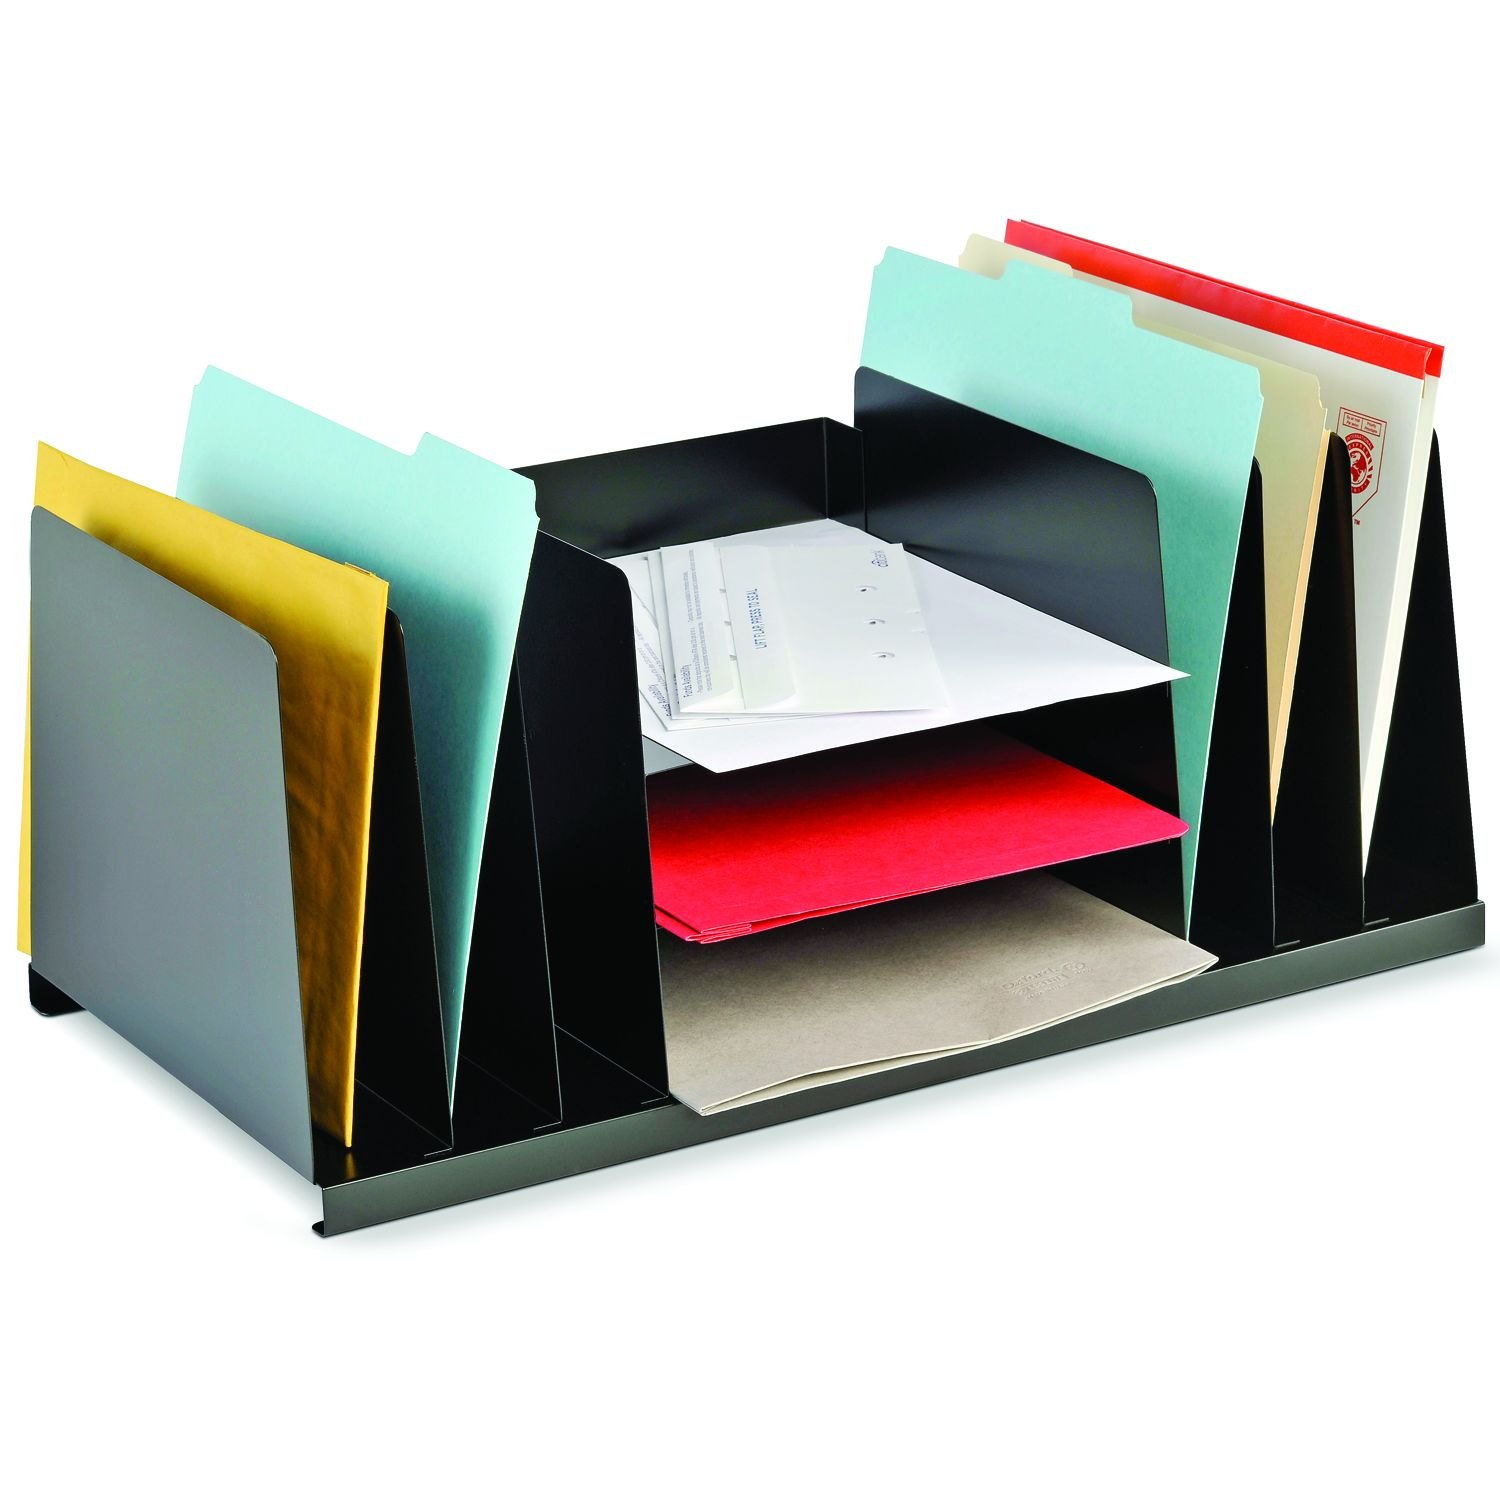 STEELMASTER Steel Combination Desk Organizer, Letter Size, 21.5 x 9.5 x 11.4 Inches, Black (2643DOBK)